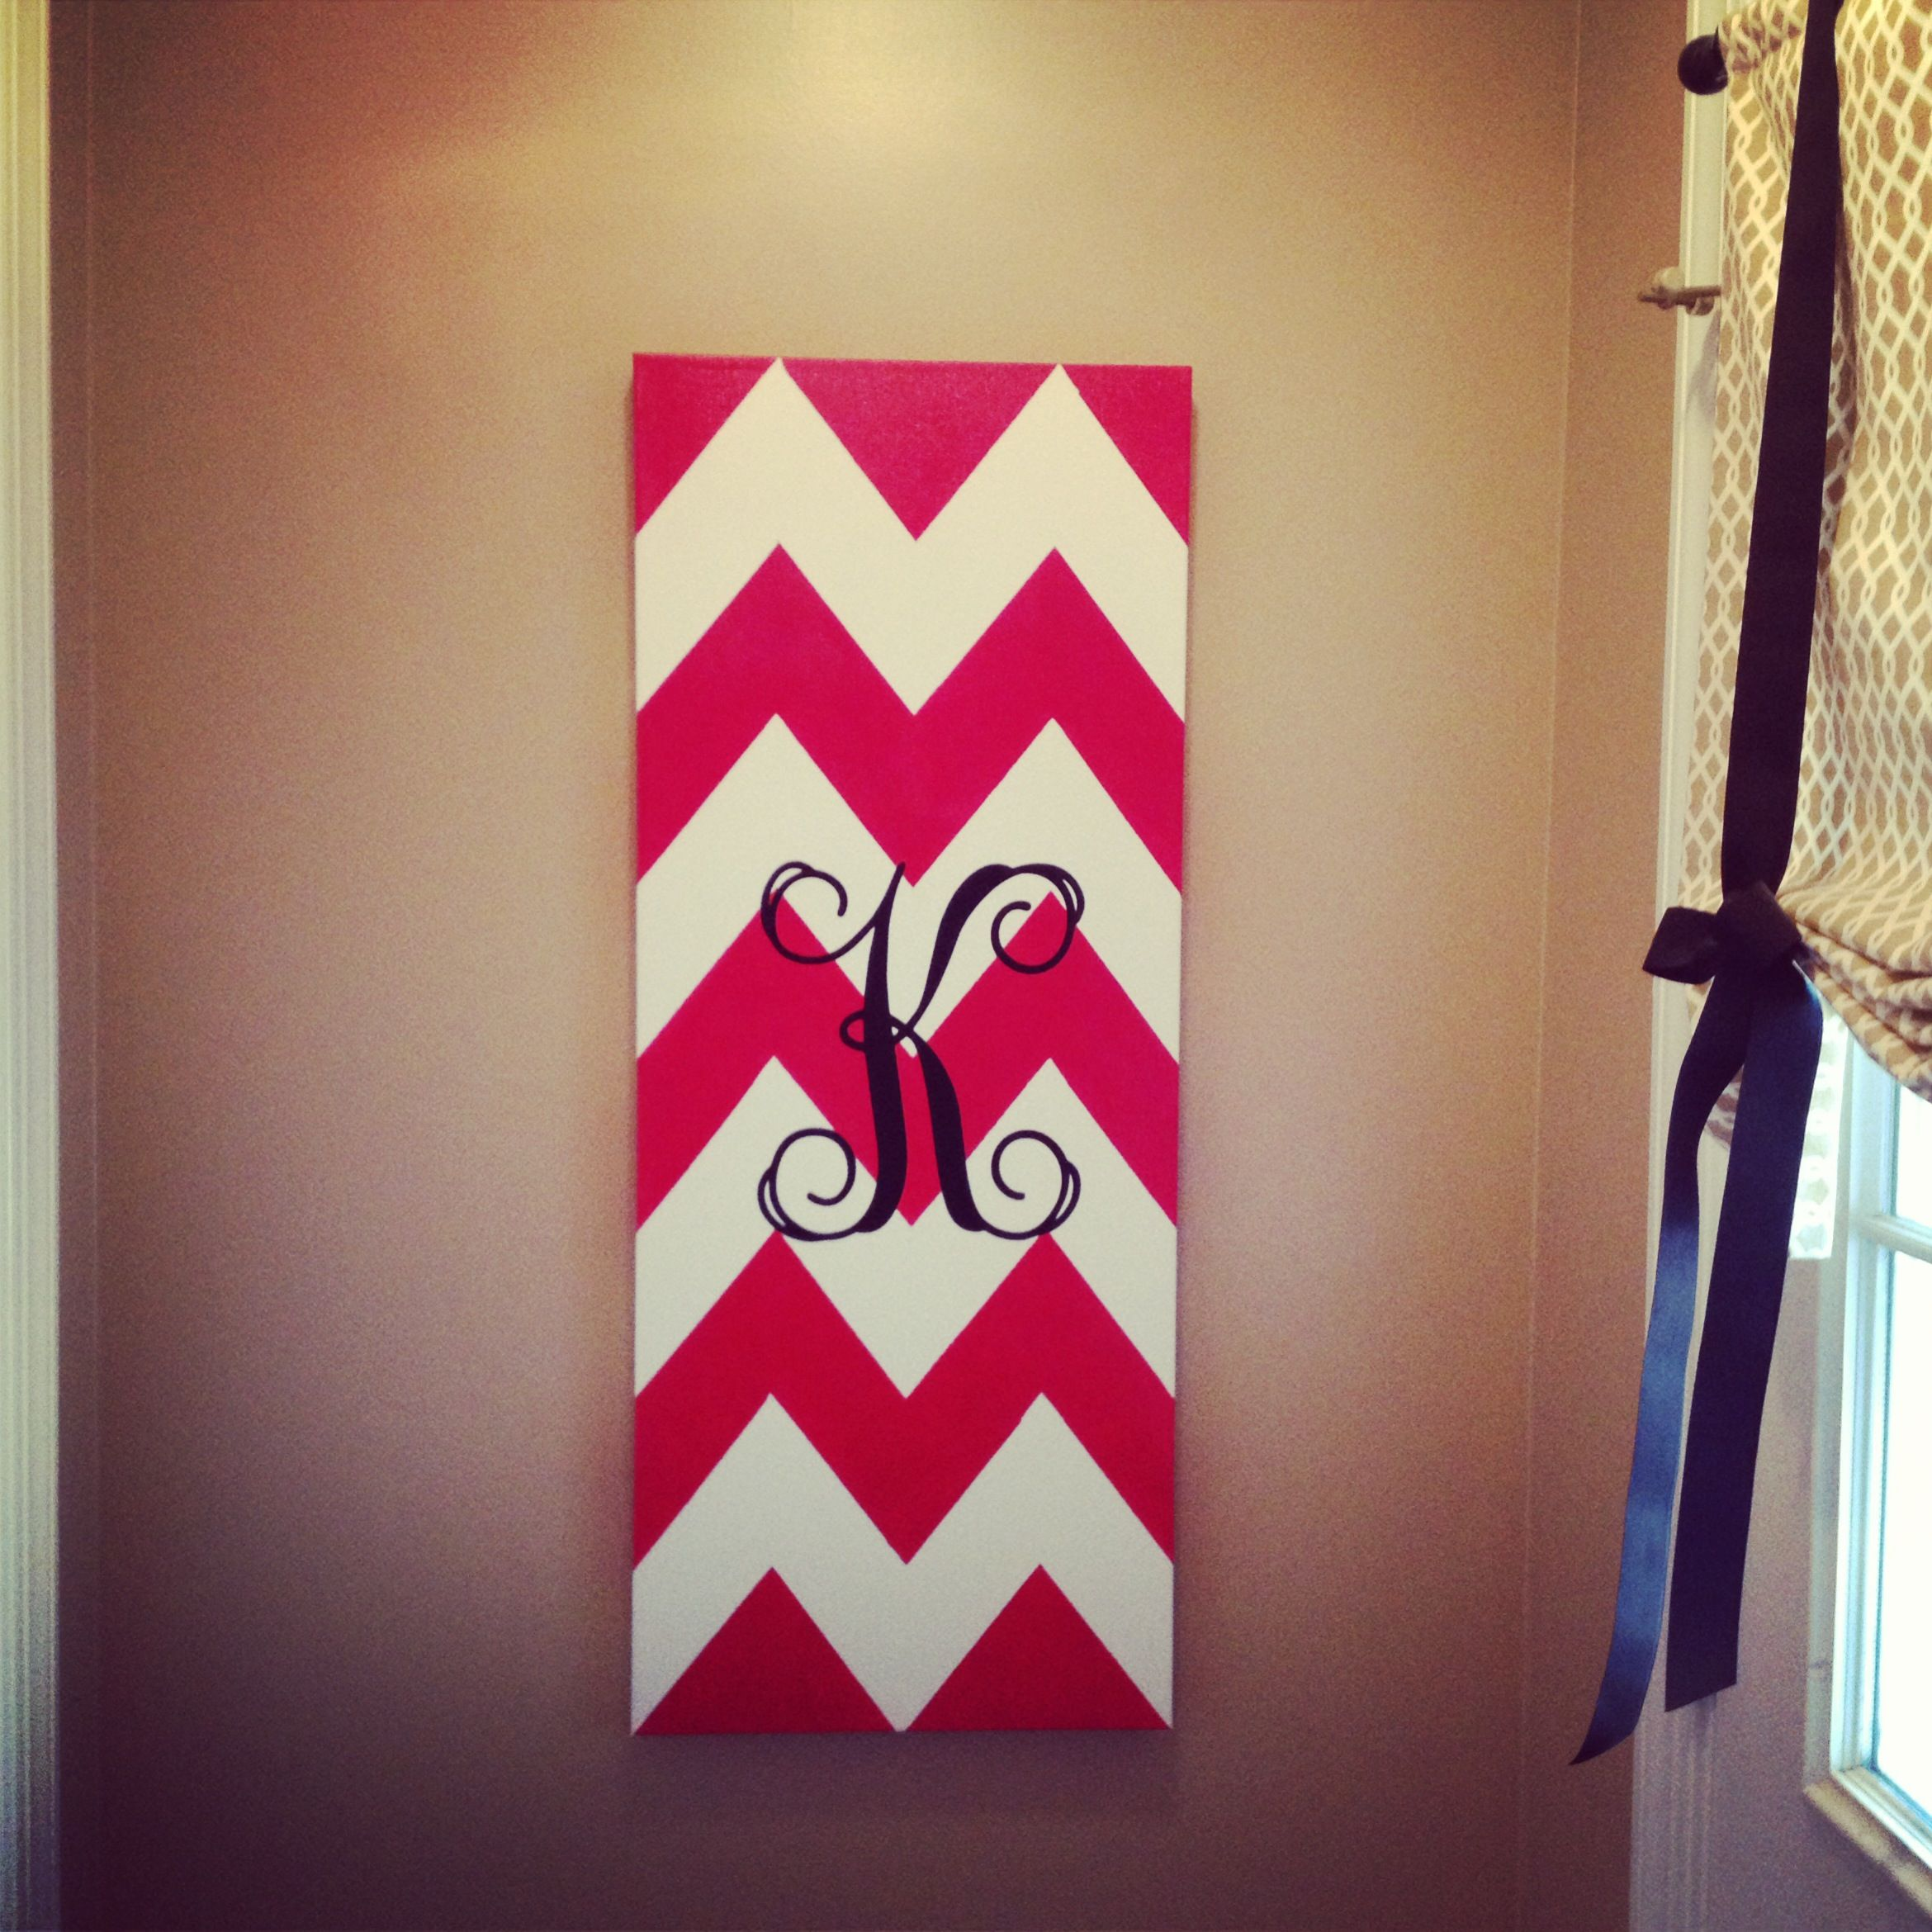 Chevron Painted on Canvas with monogram- This covers my ugly fuse box!